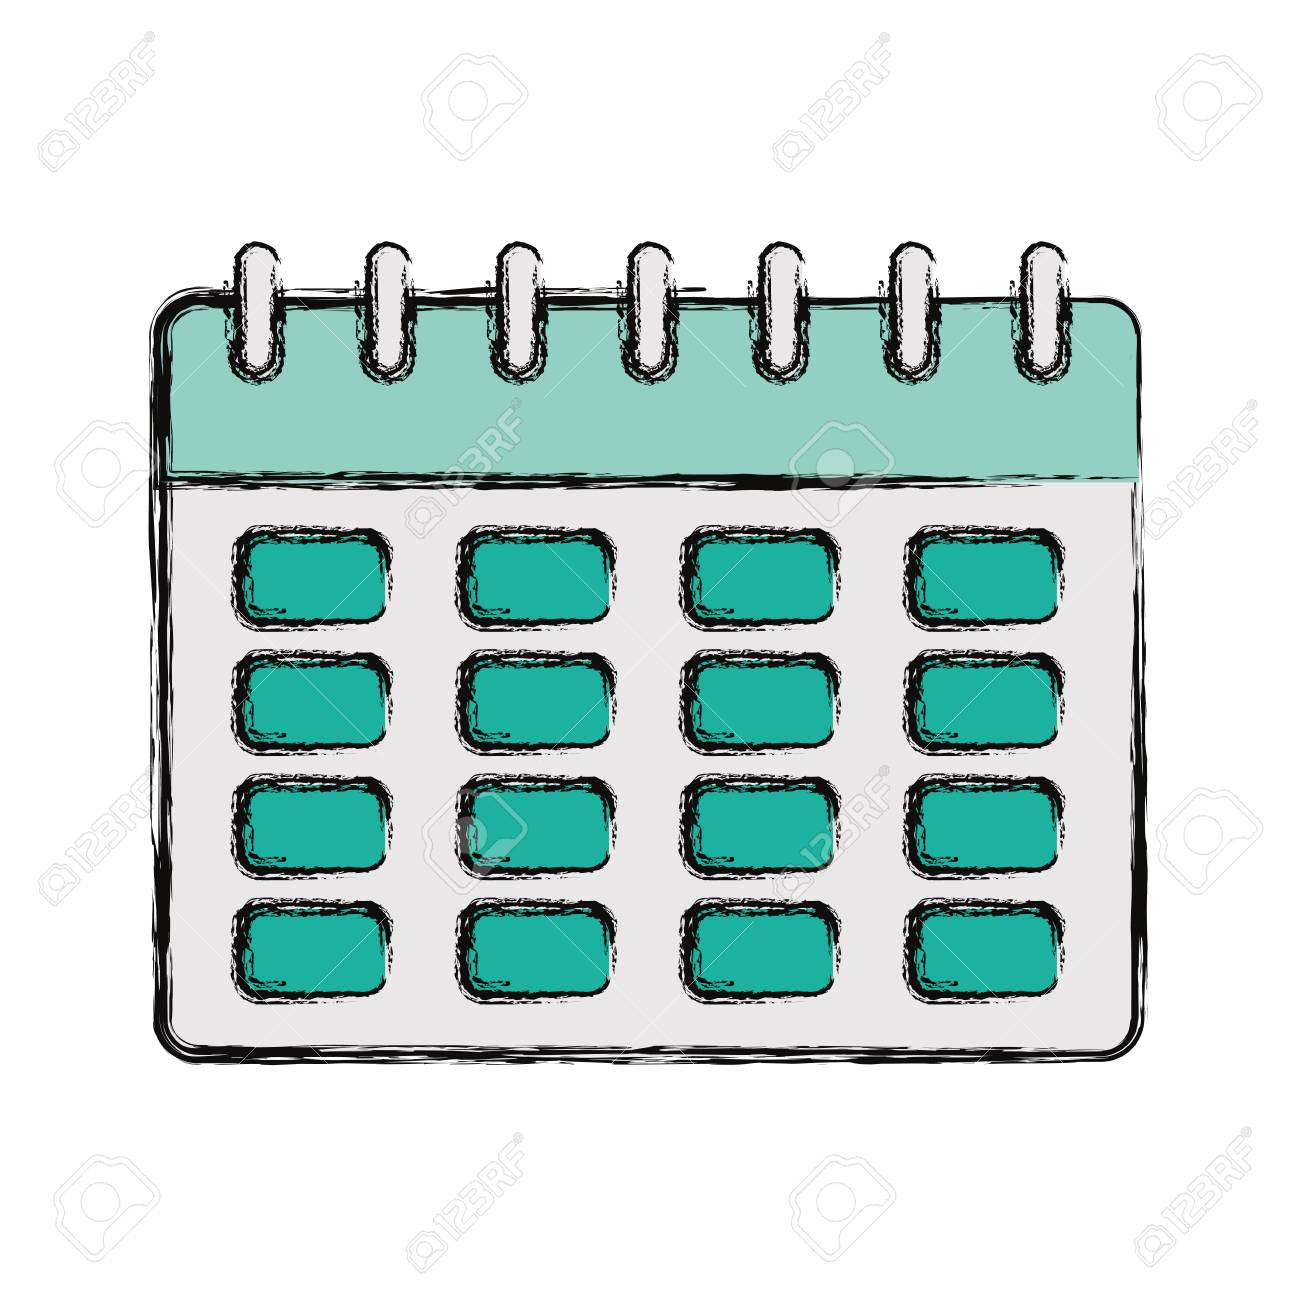 Image result for colorful calendar drawing